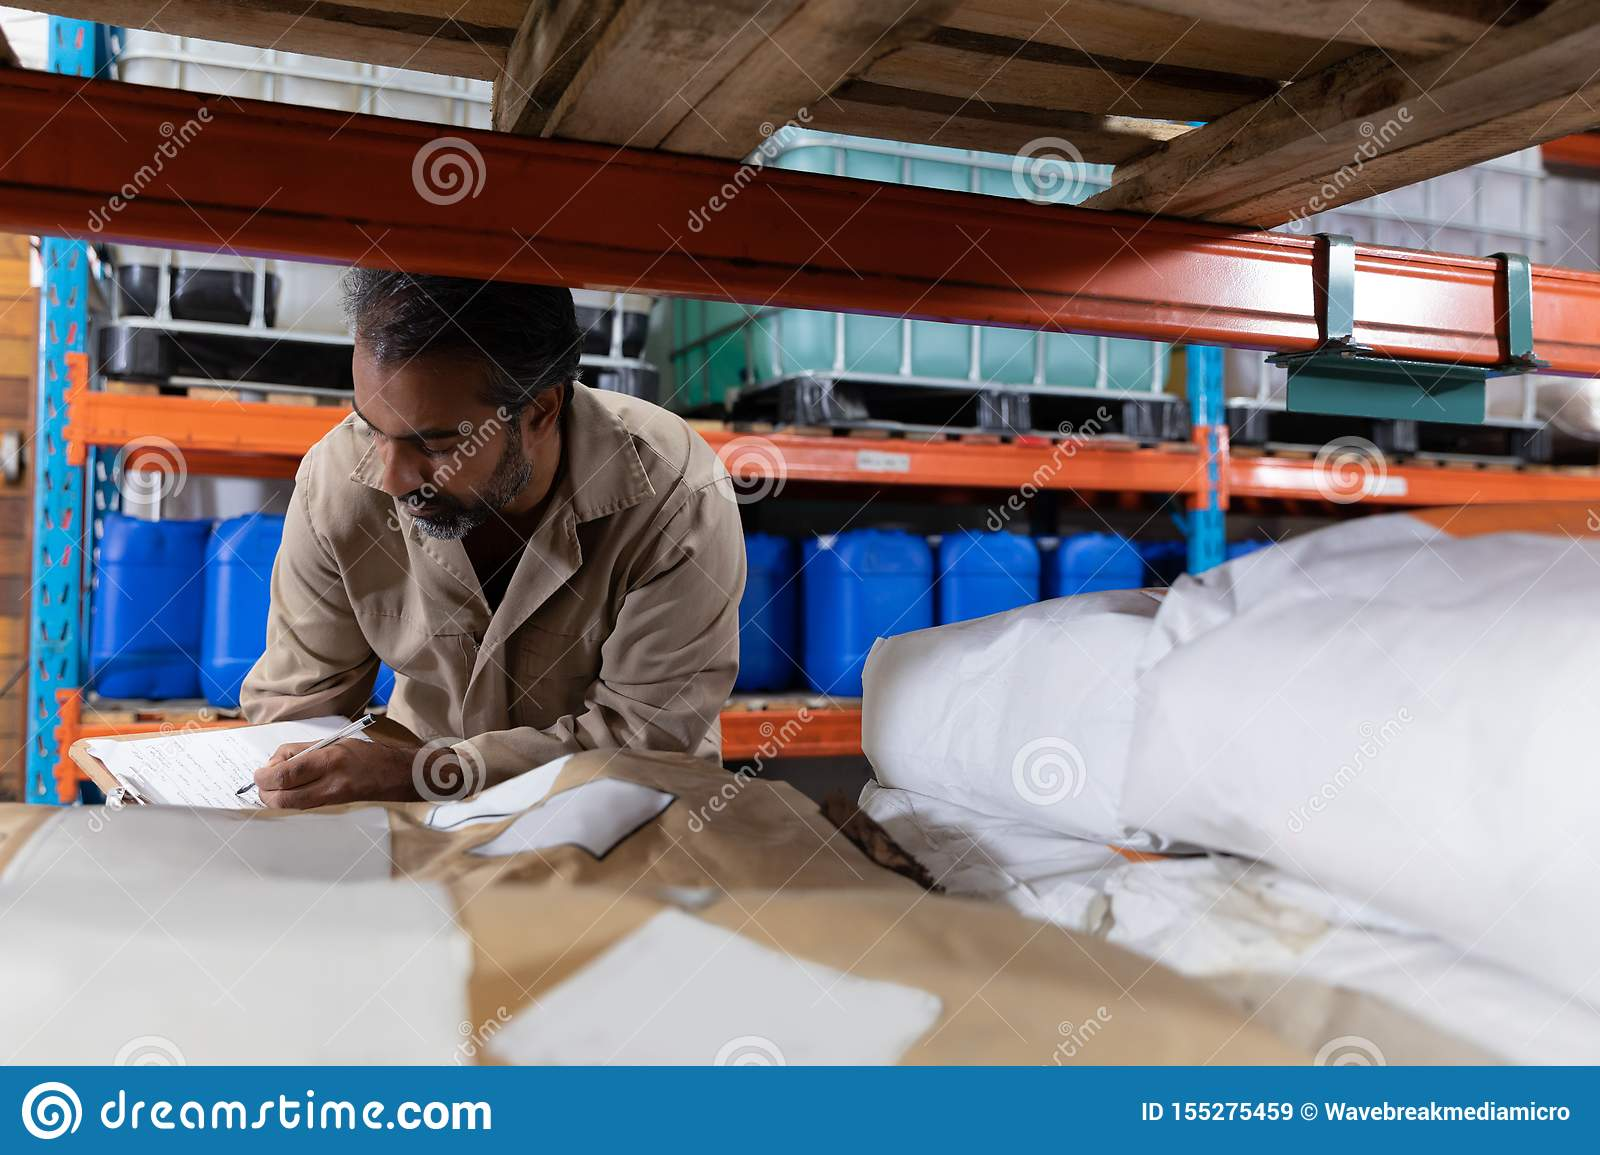 Male staff checking stocks in warehouse